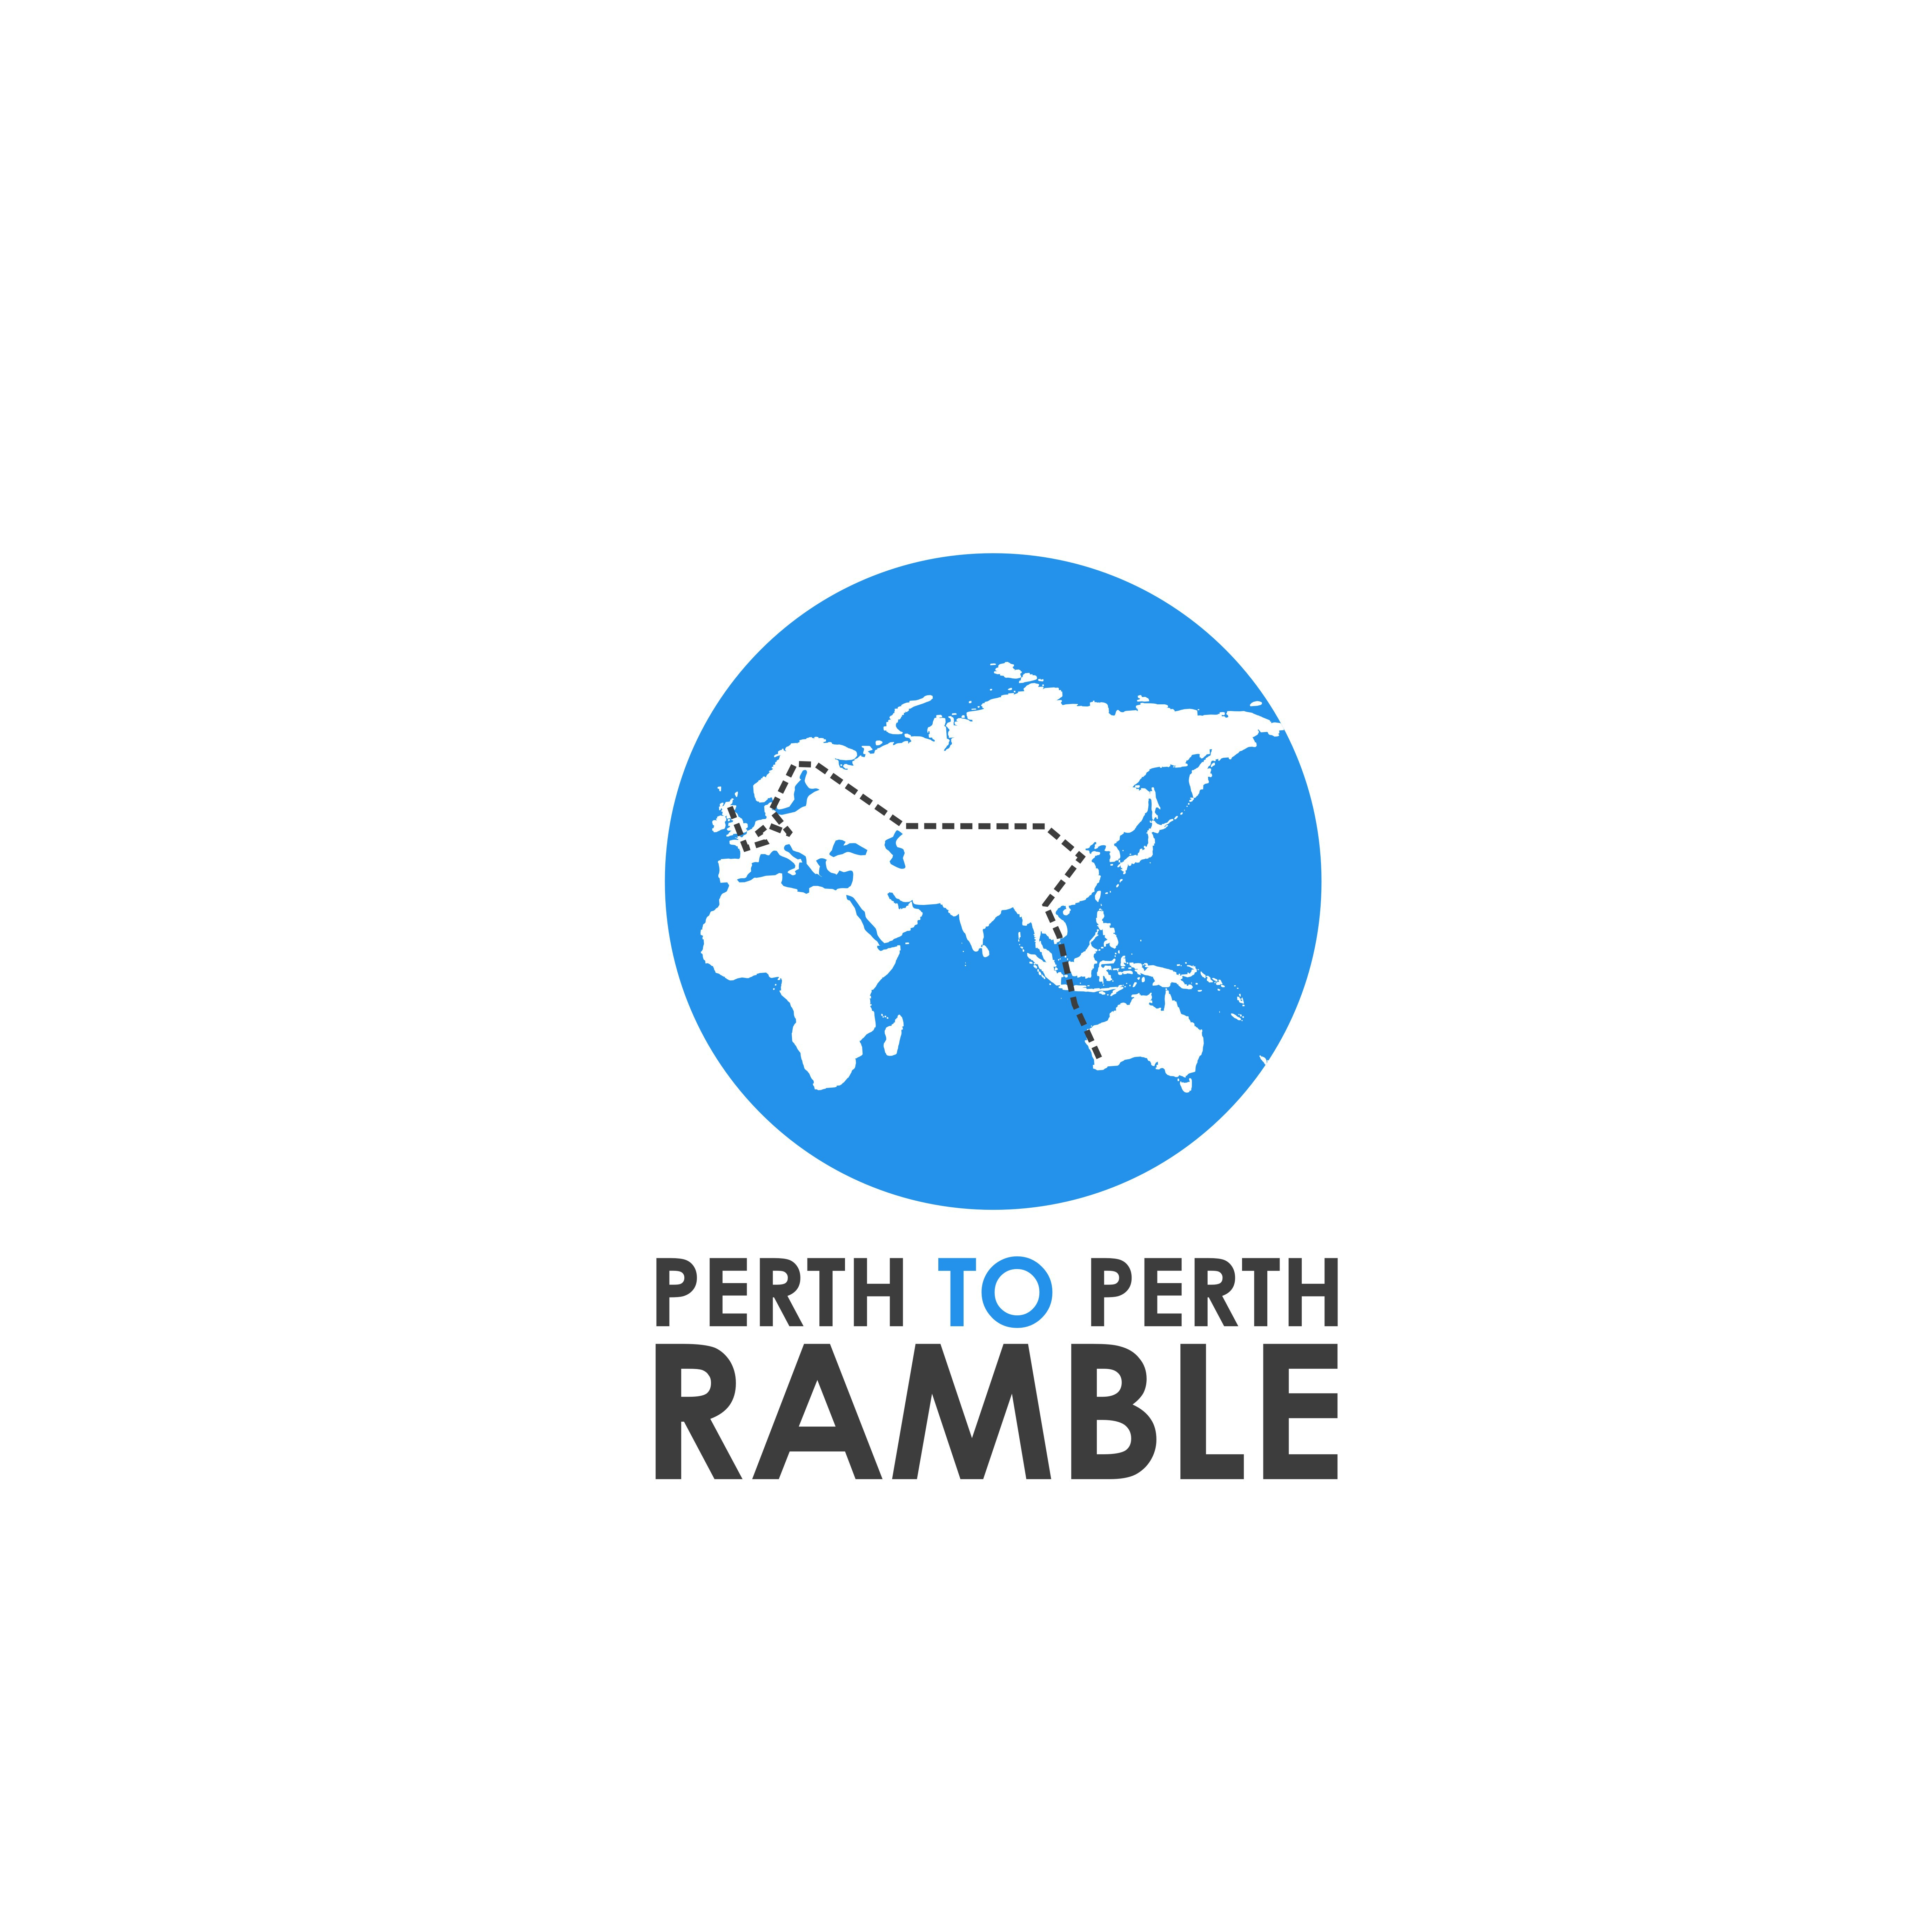 Perth to Perth Ramble needs a logo to show around the world